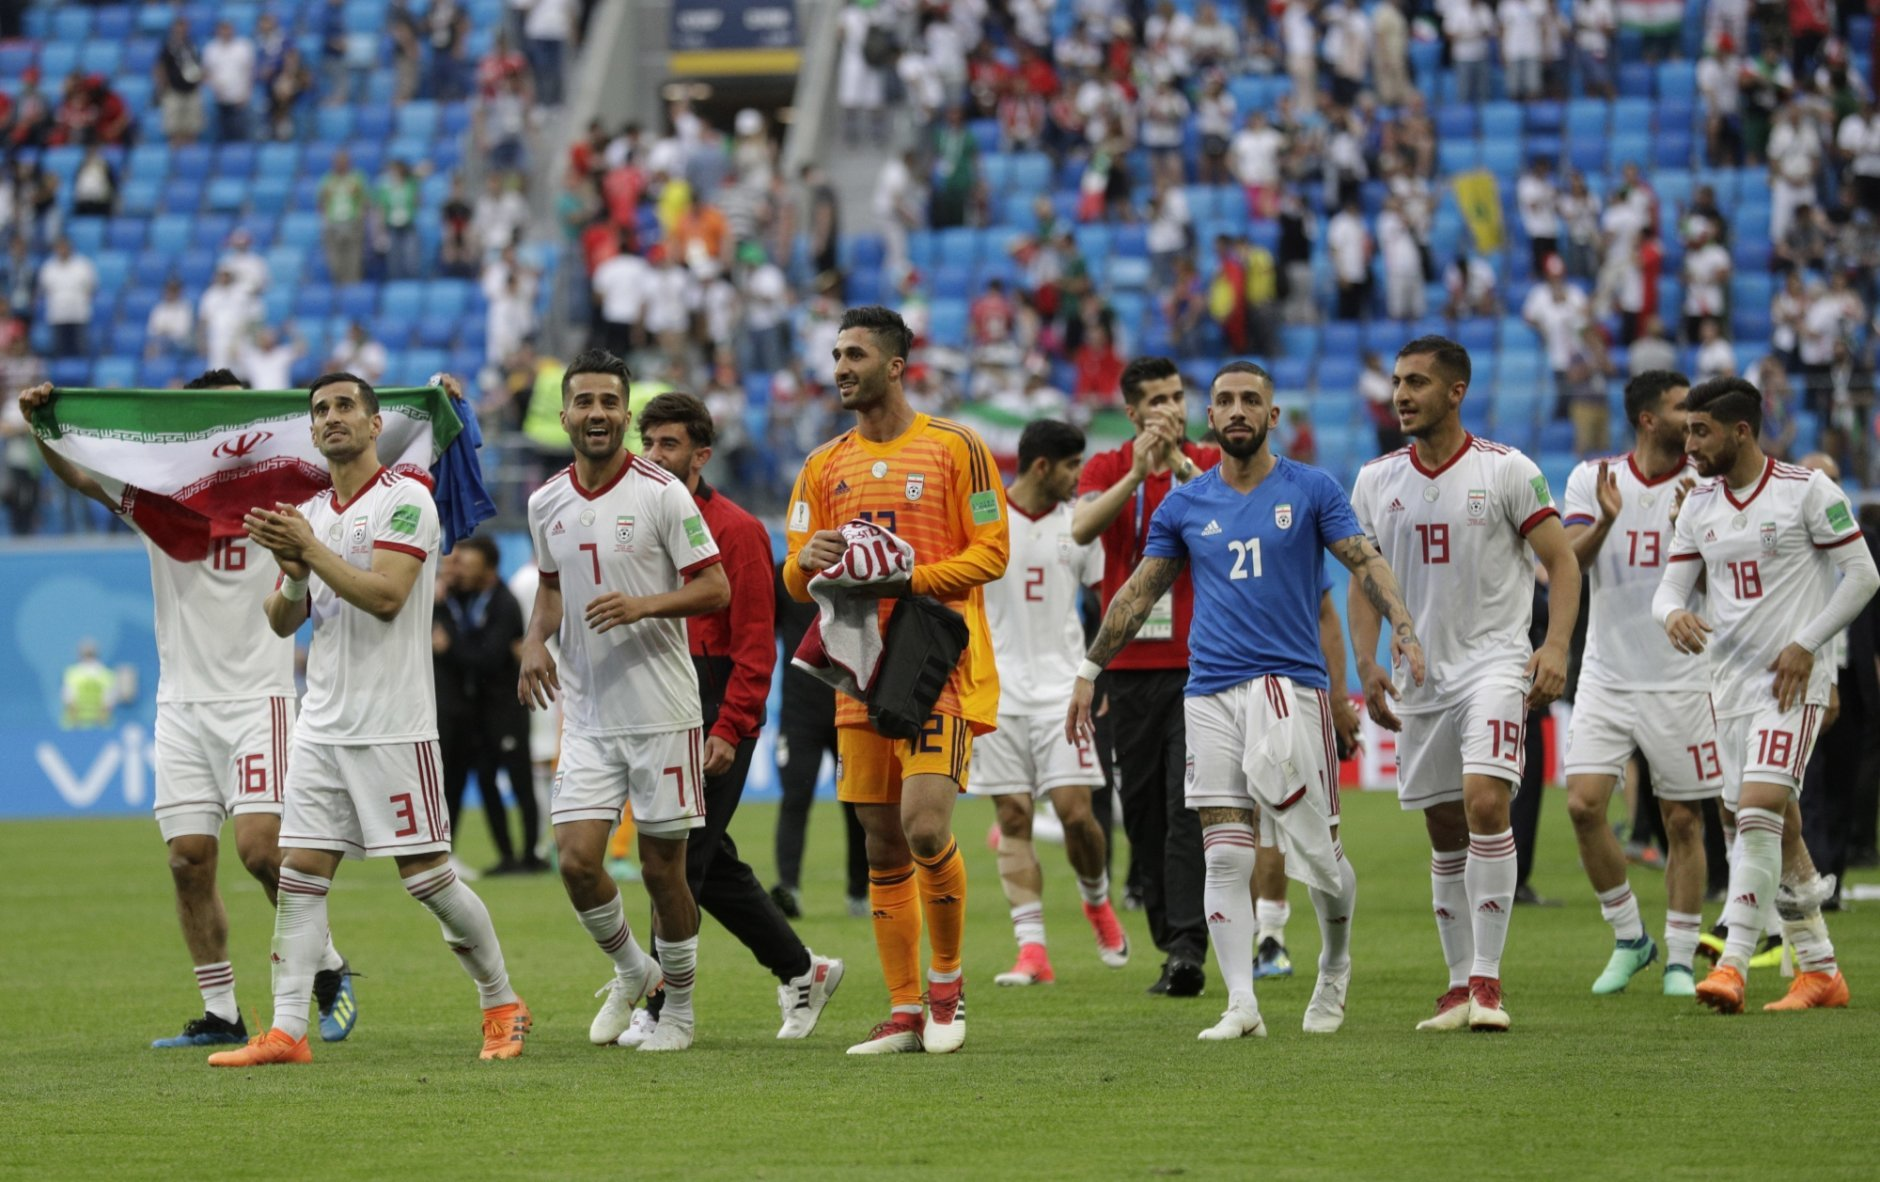 Iran's players celebrate their victory at the group B match between Morocco and Iran at the 2018 soccer World Cup in the St. Petersburg Stadium in St. Petersburg, Russia, Friday, June 15, 2018. (AP Photo/Andrew Medichini)